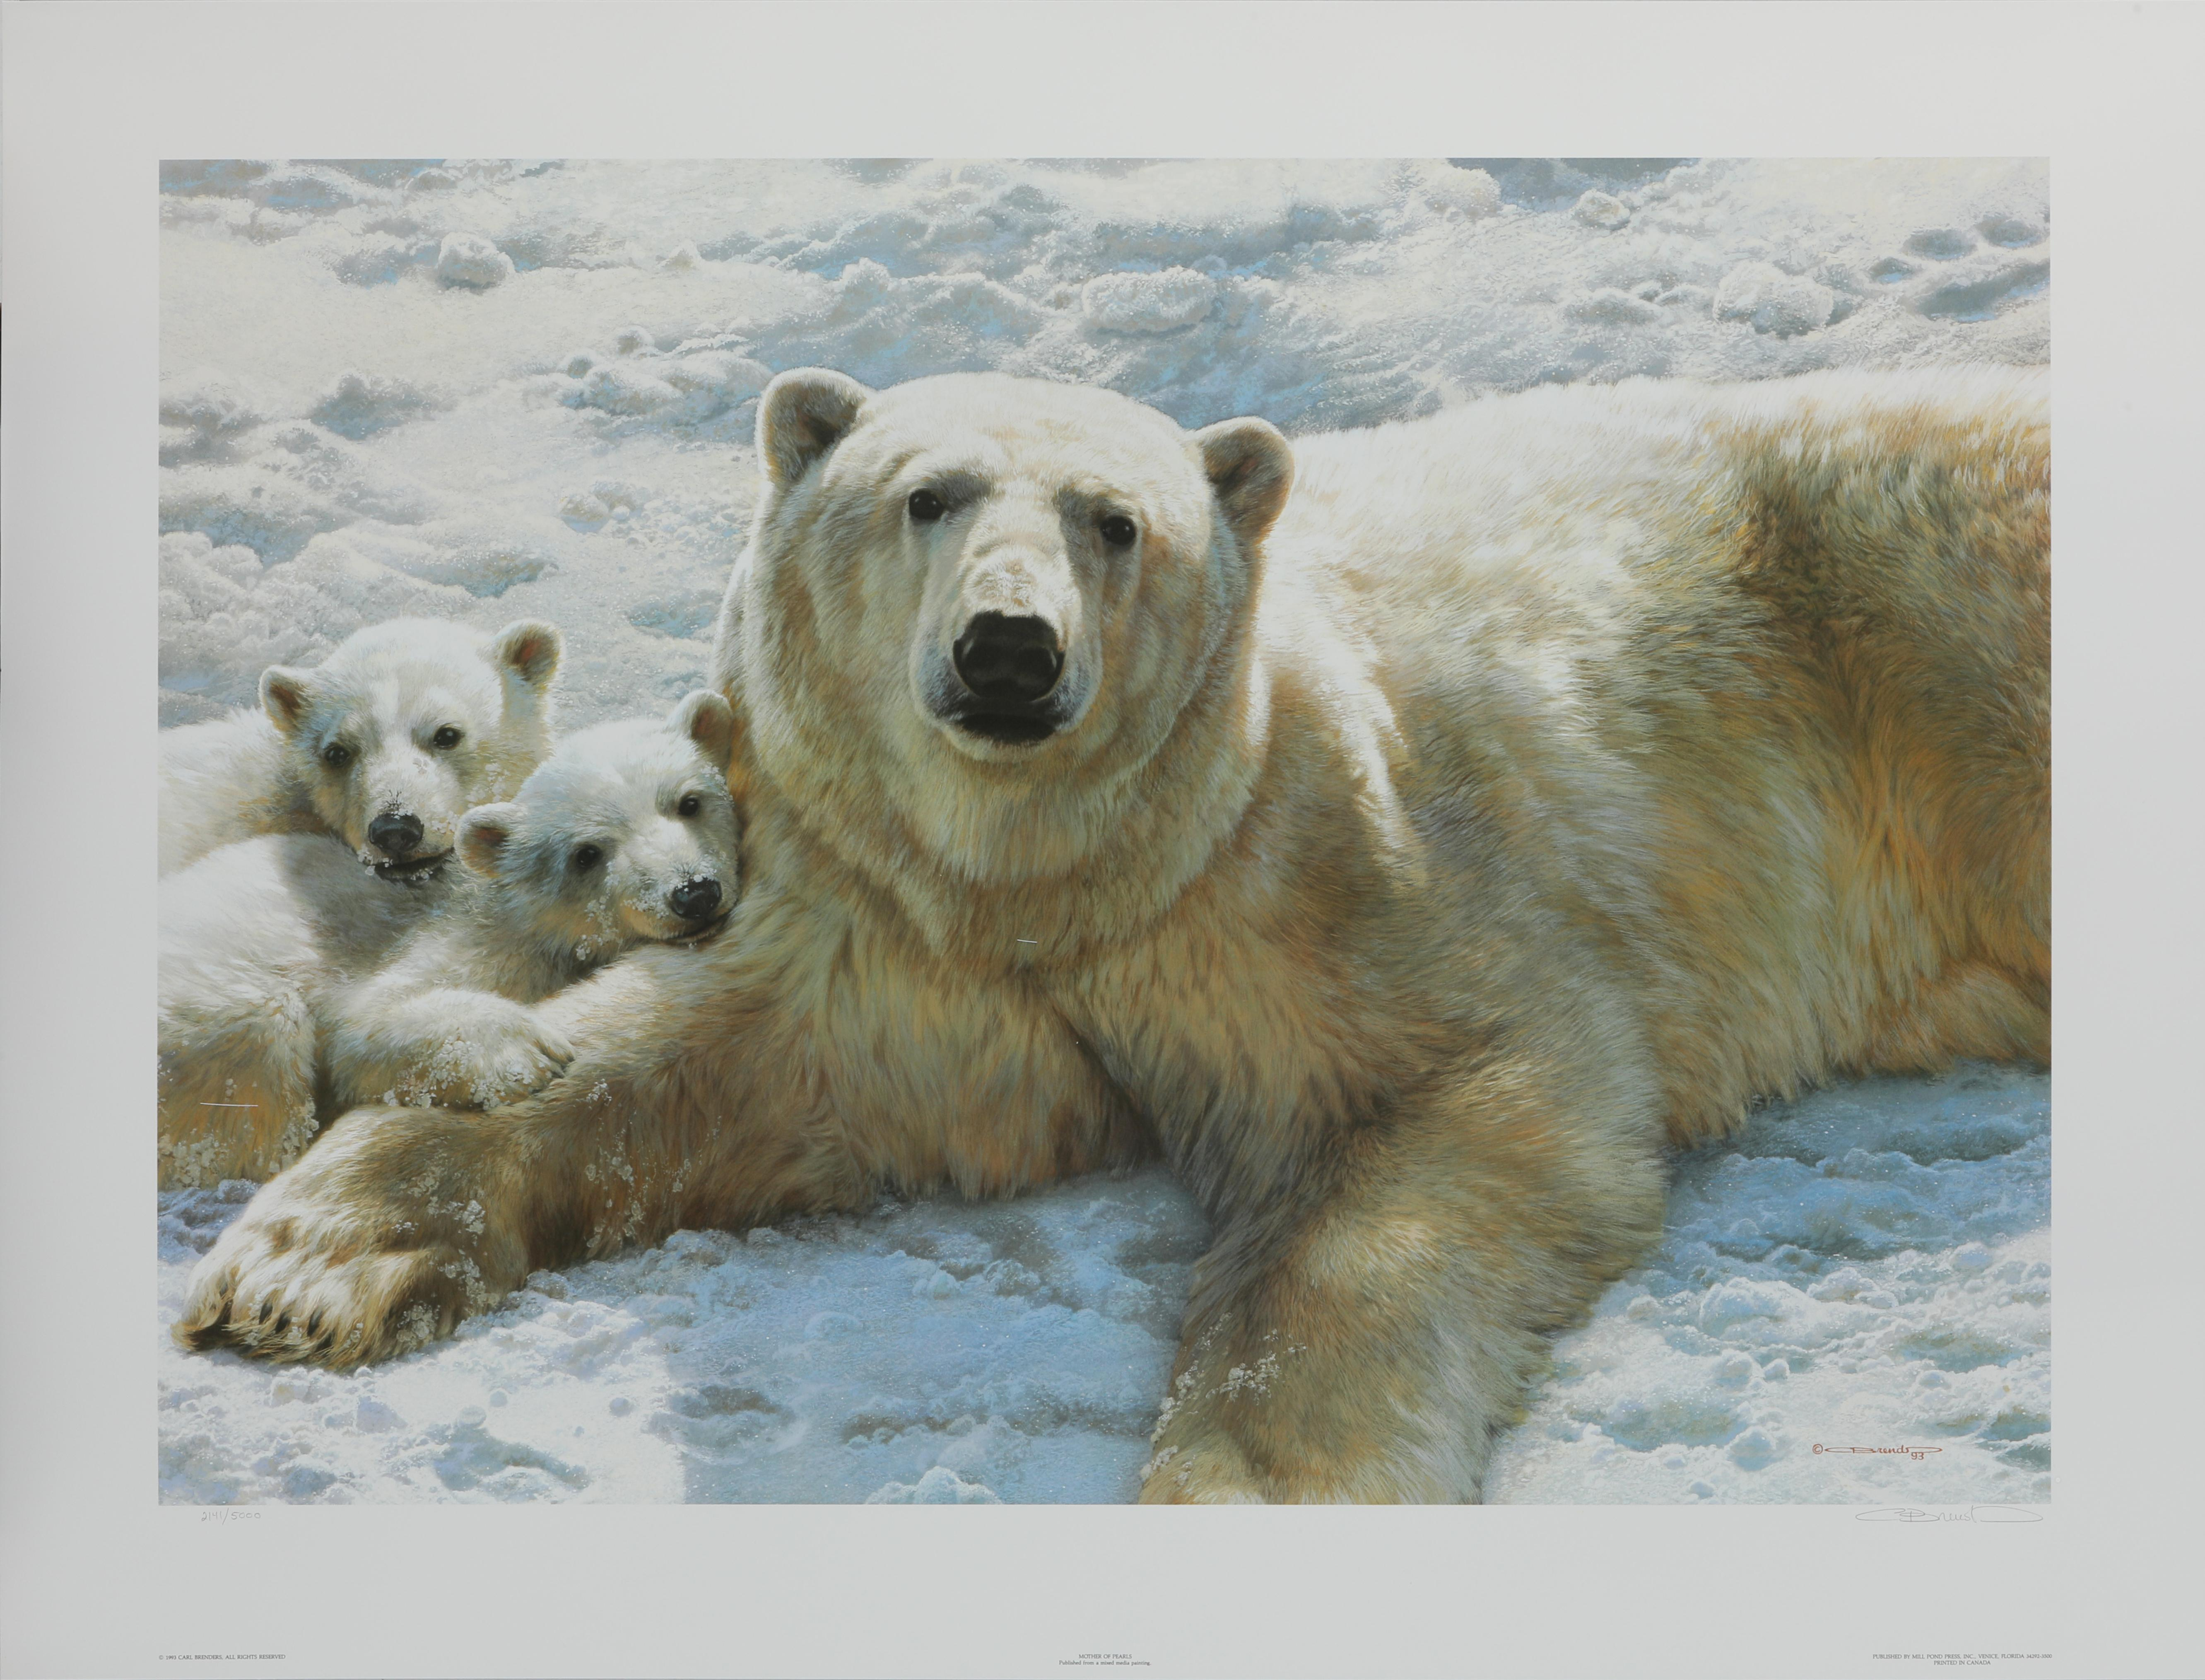 """Carl Brenders' """"Mother of Pearls"""" Limited Edition Print"""